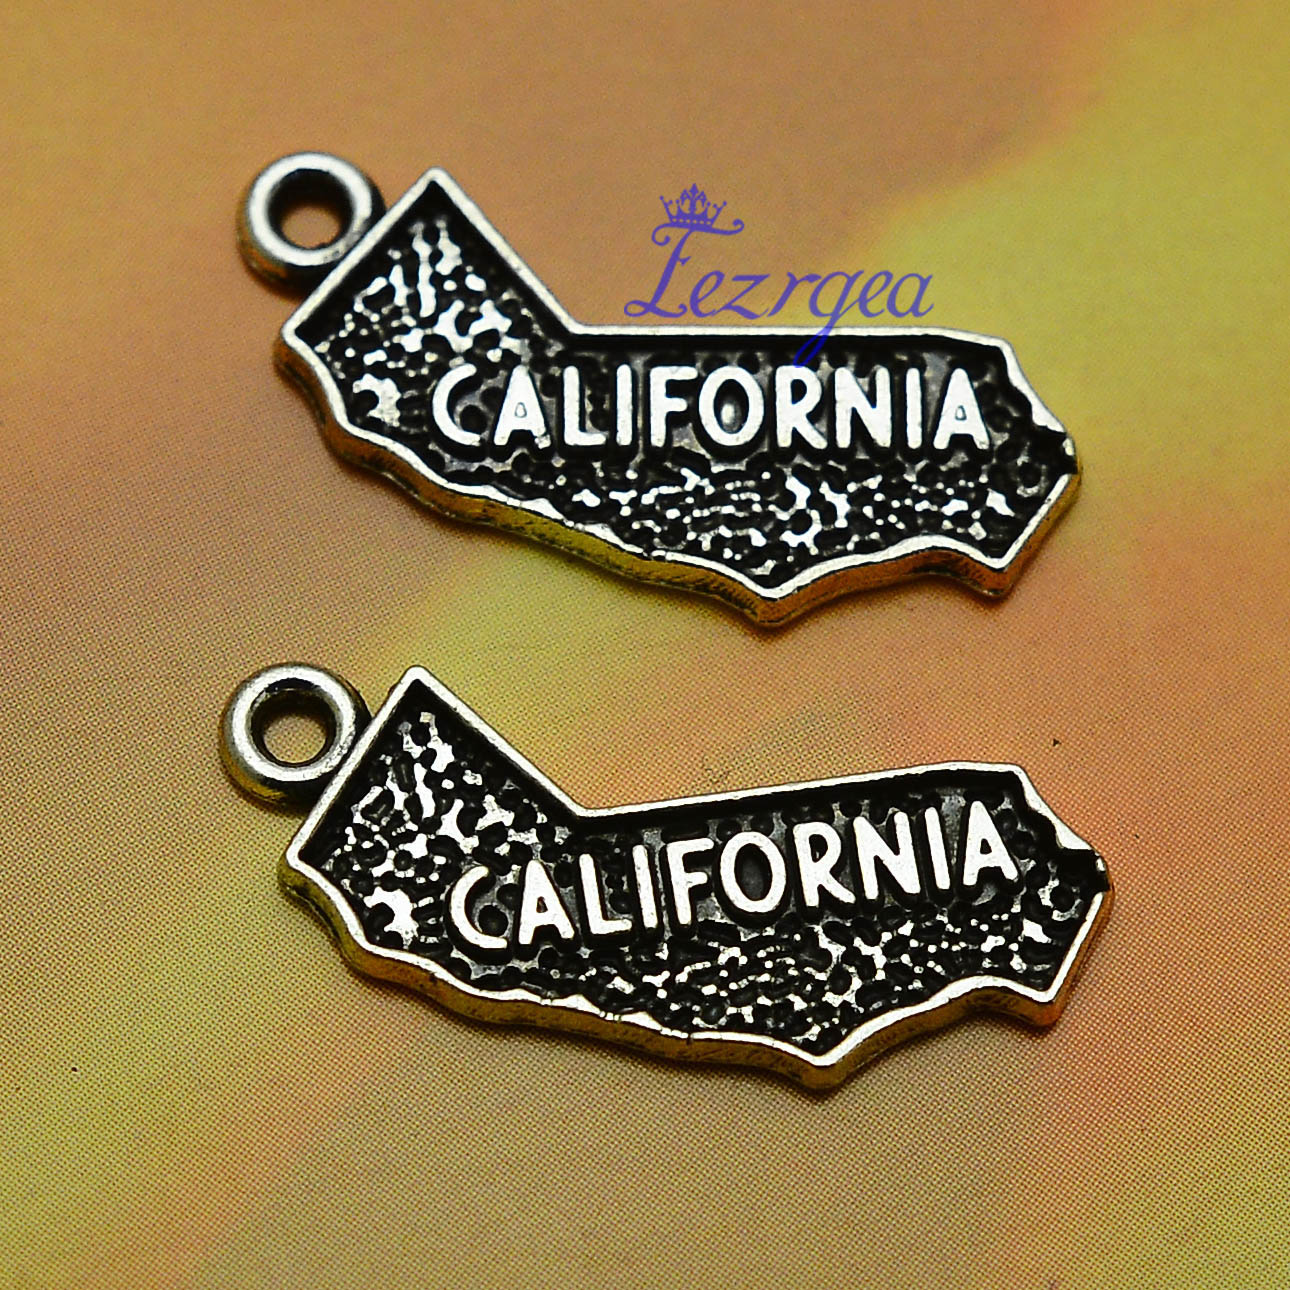 20pcs/lot--25x9mm, Antique silver plated California map state shape charms,DIY supplies,Jewelry accessories(China)